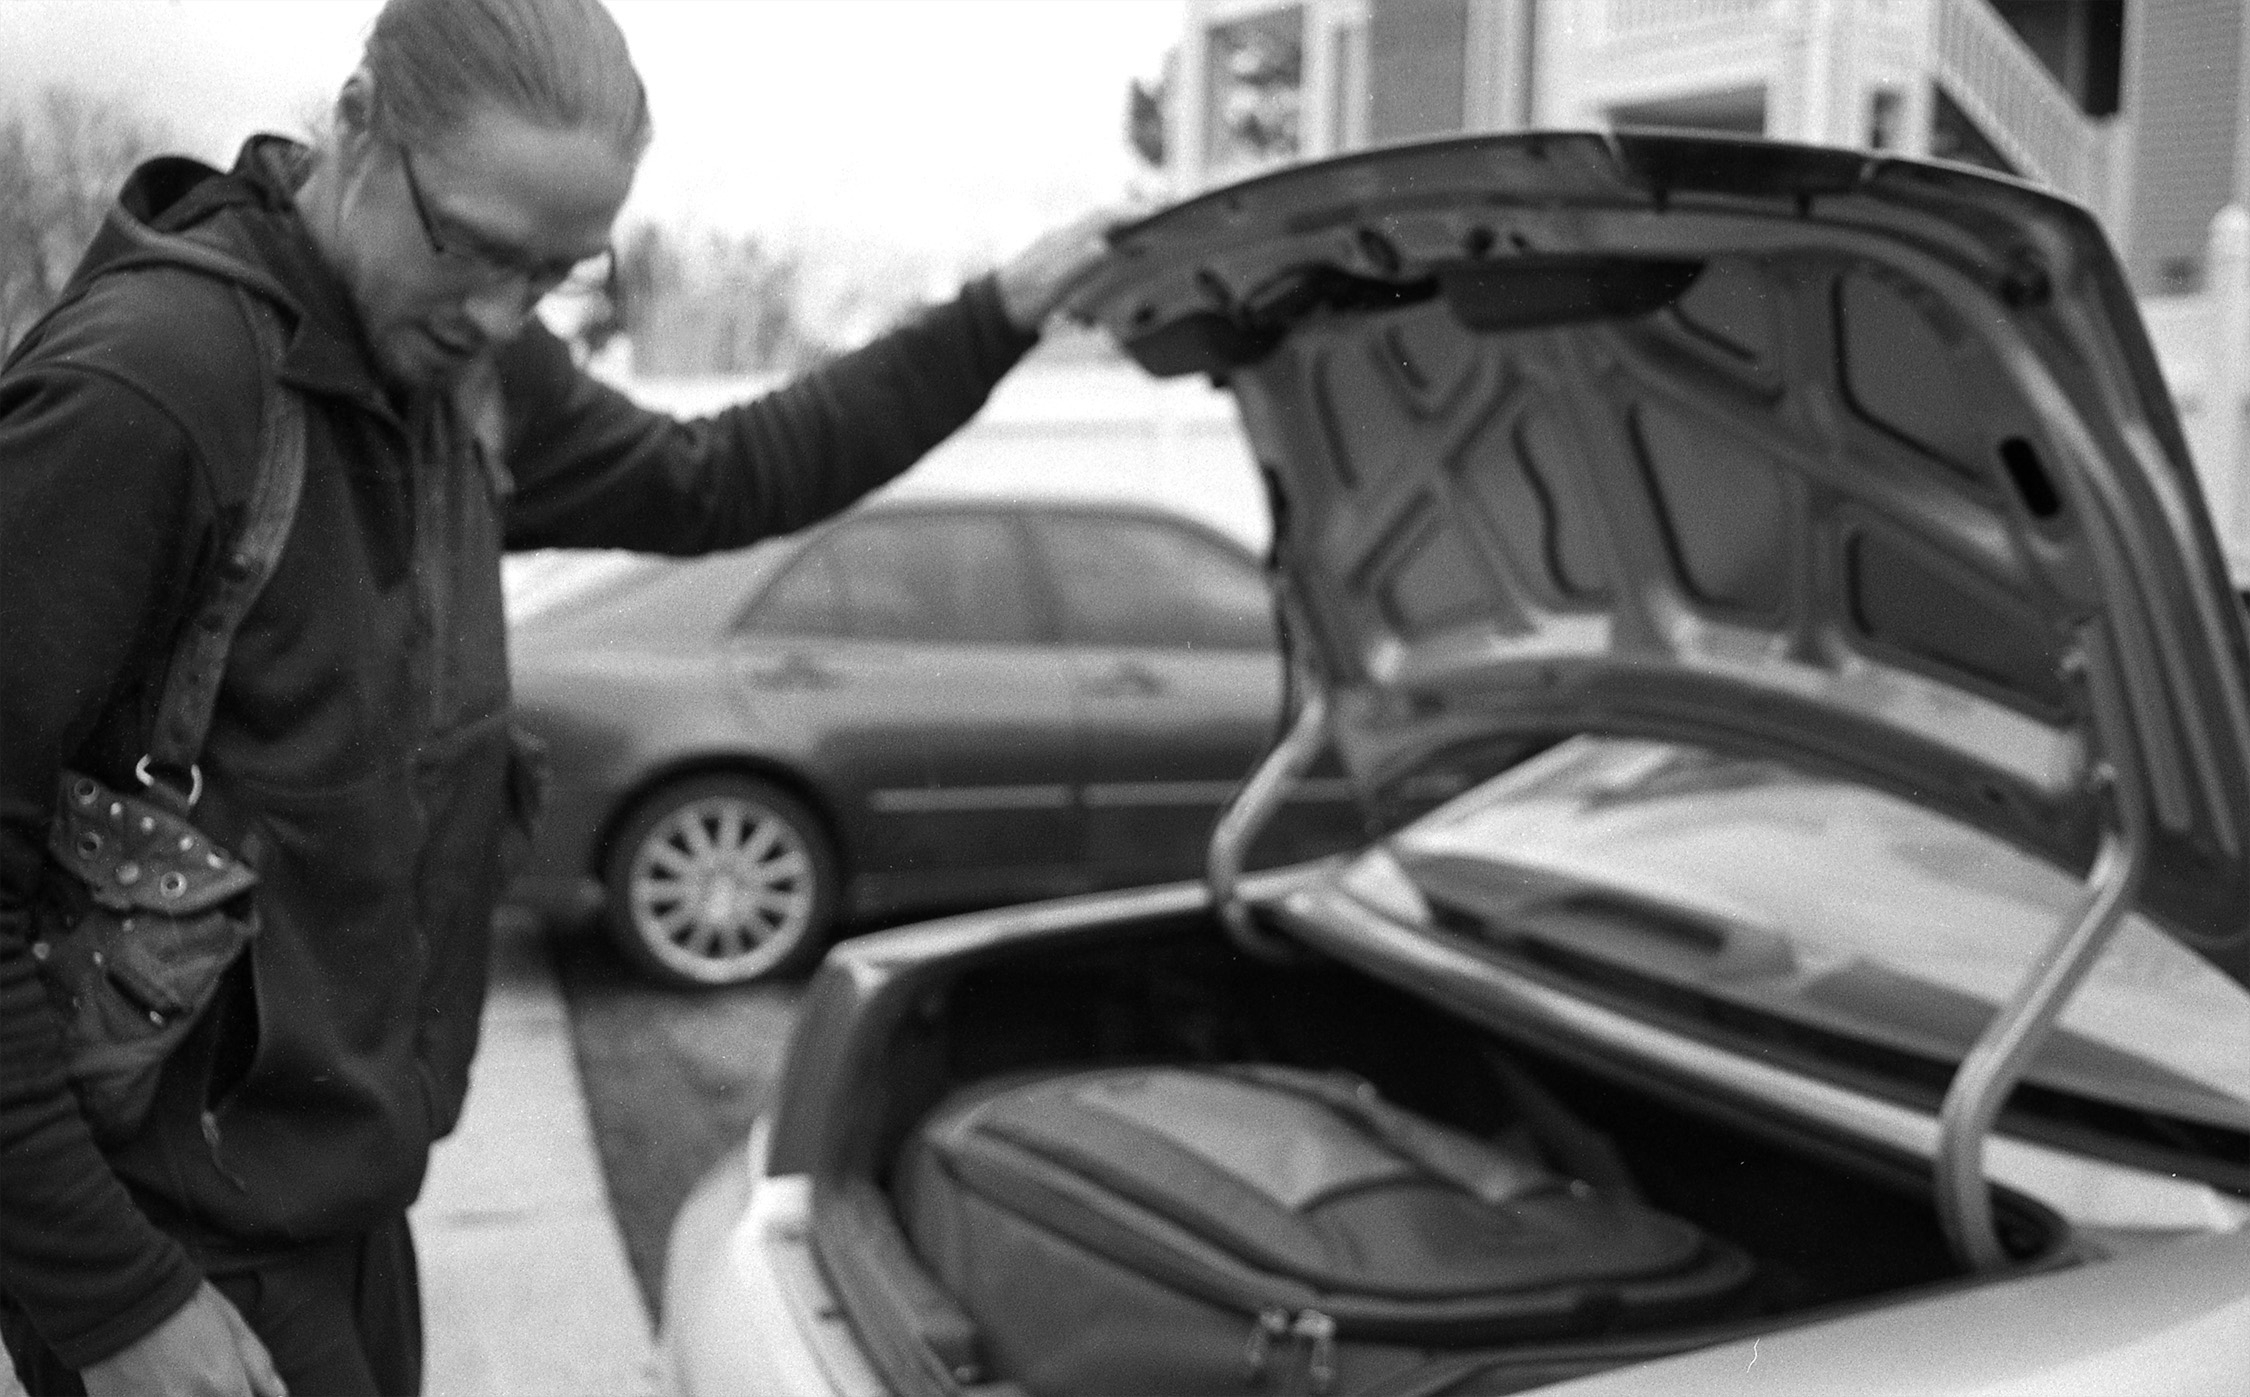 Michael Grab, 31, a stone balancing artist, closes the trunk to his car in Aurora, Colorado, in March 2016. Grab used to live out of his car for several months.